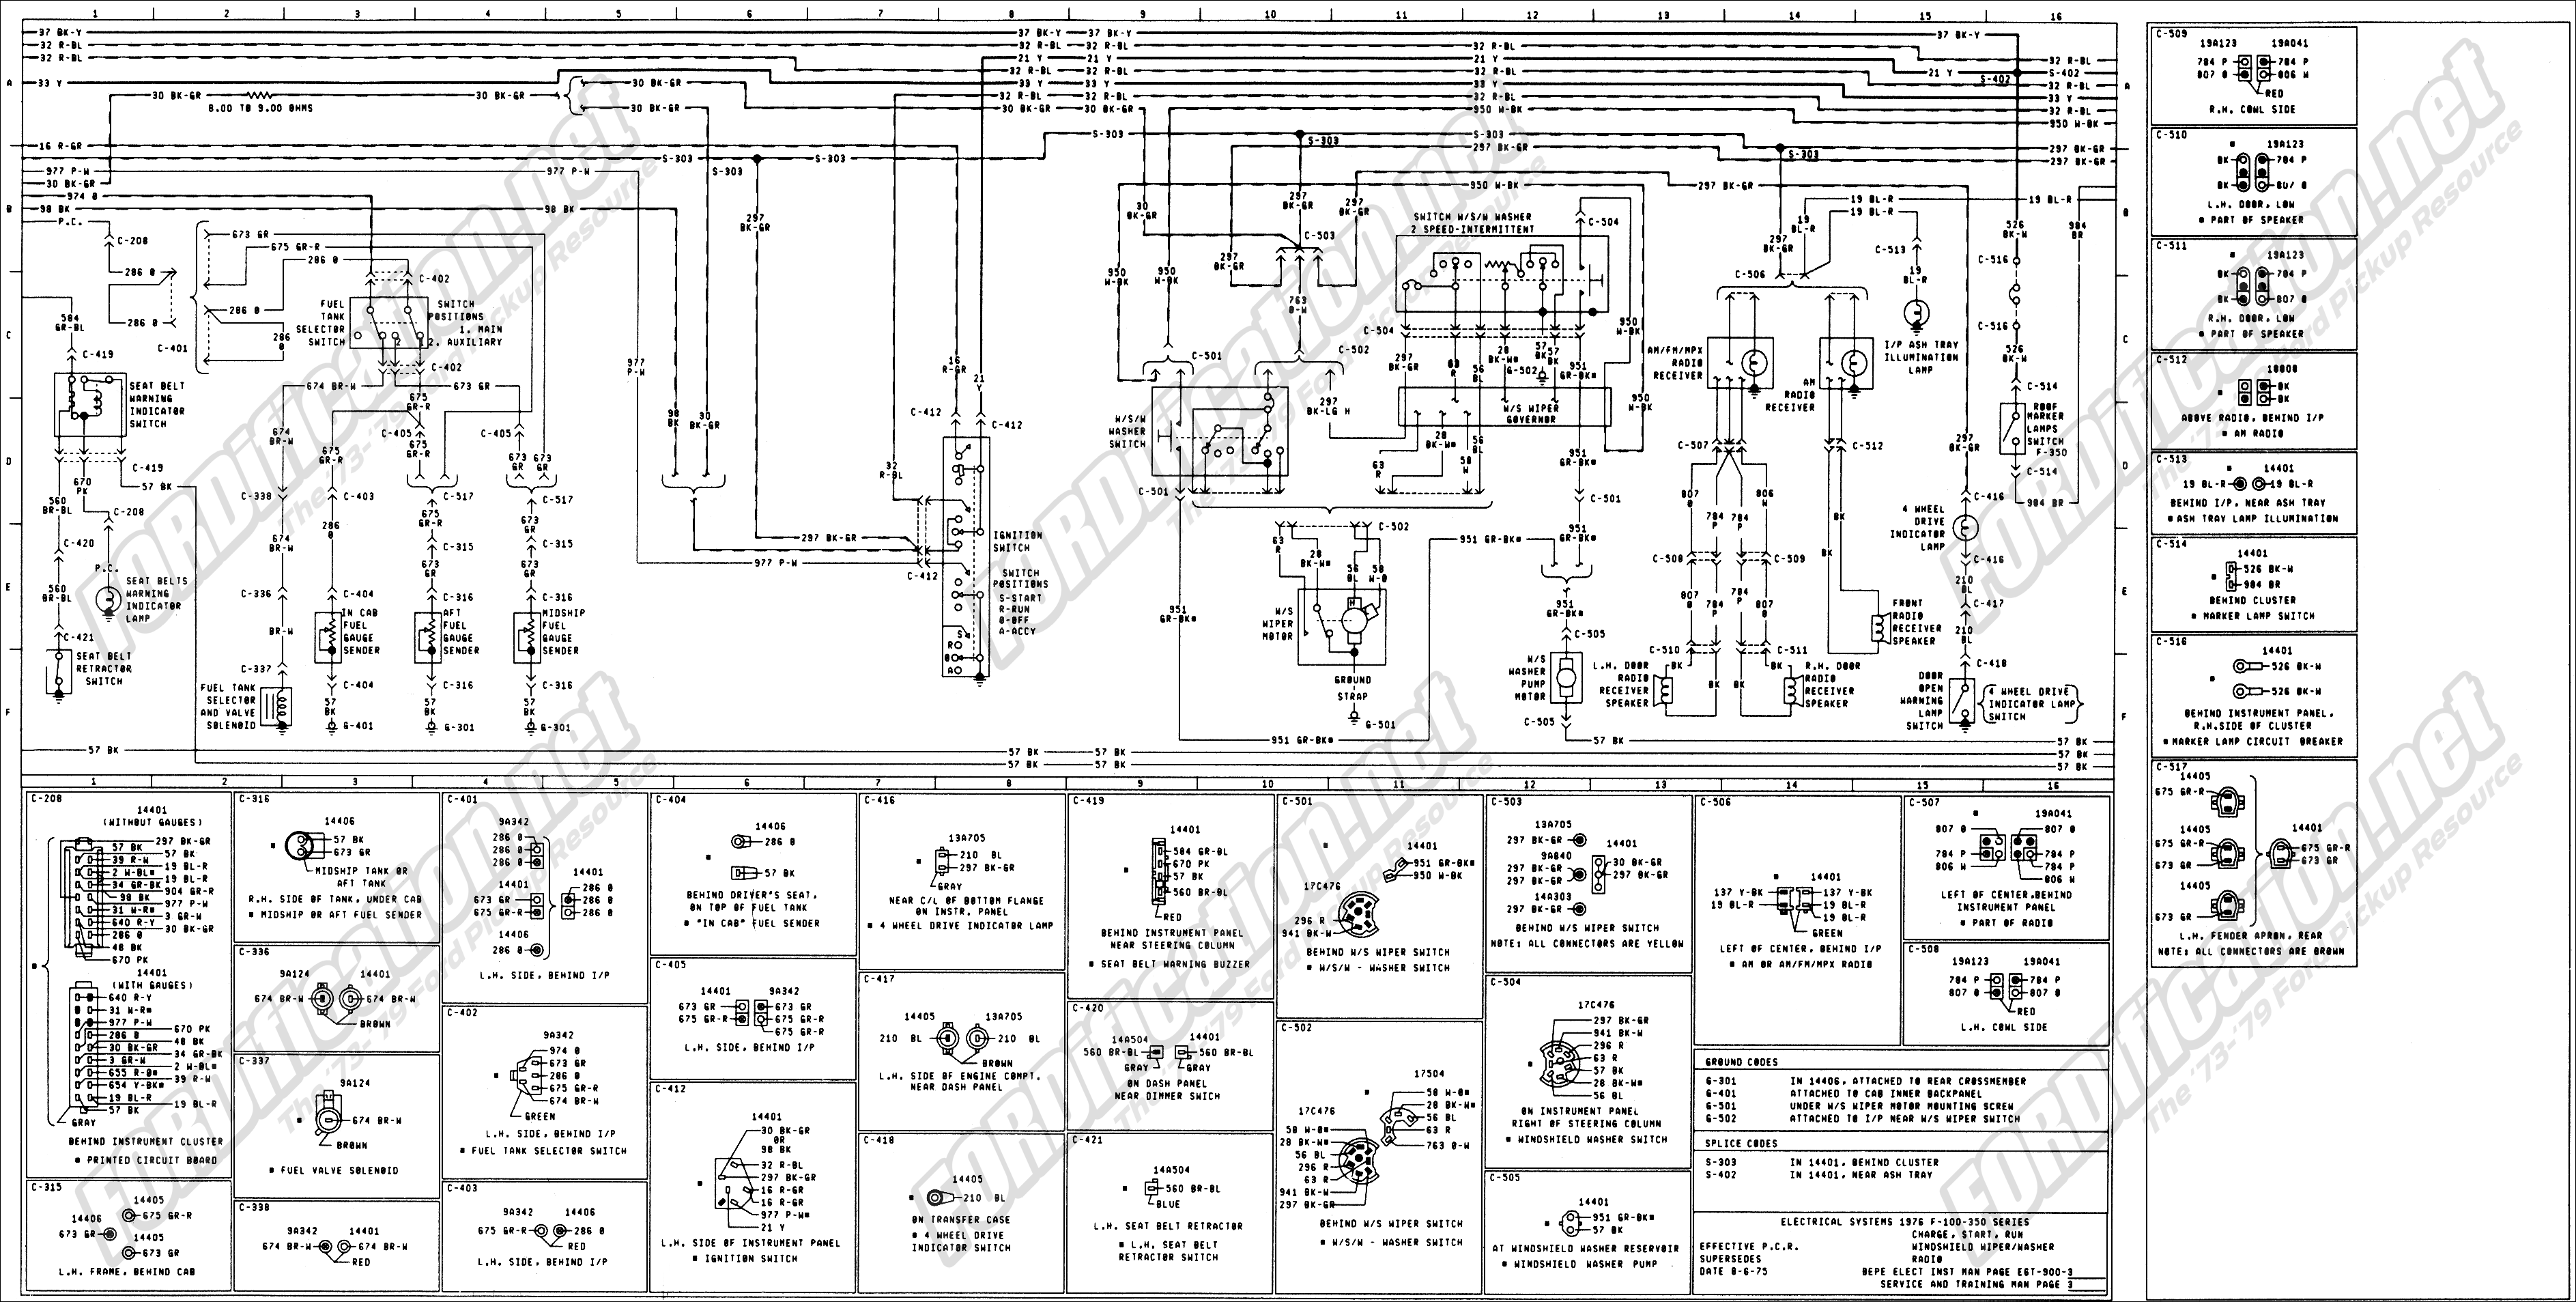 1975 Ford F250 Wiring Diagram - wiring diagrams schematics